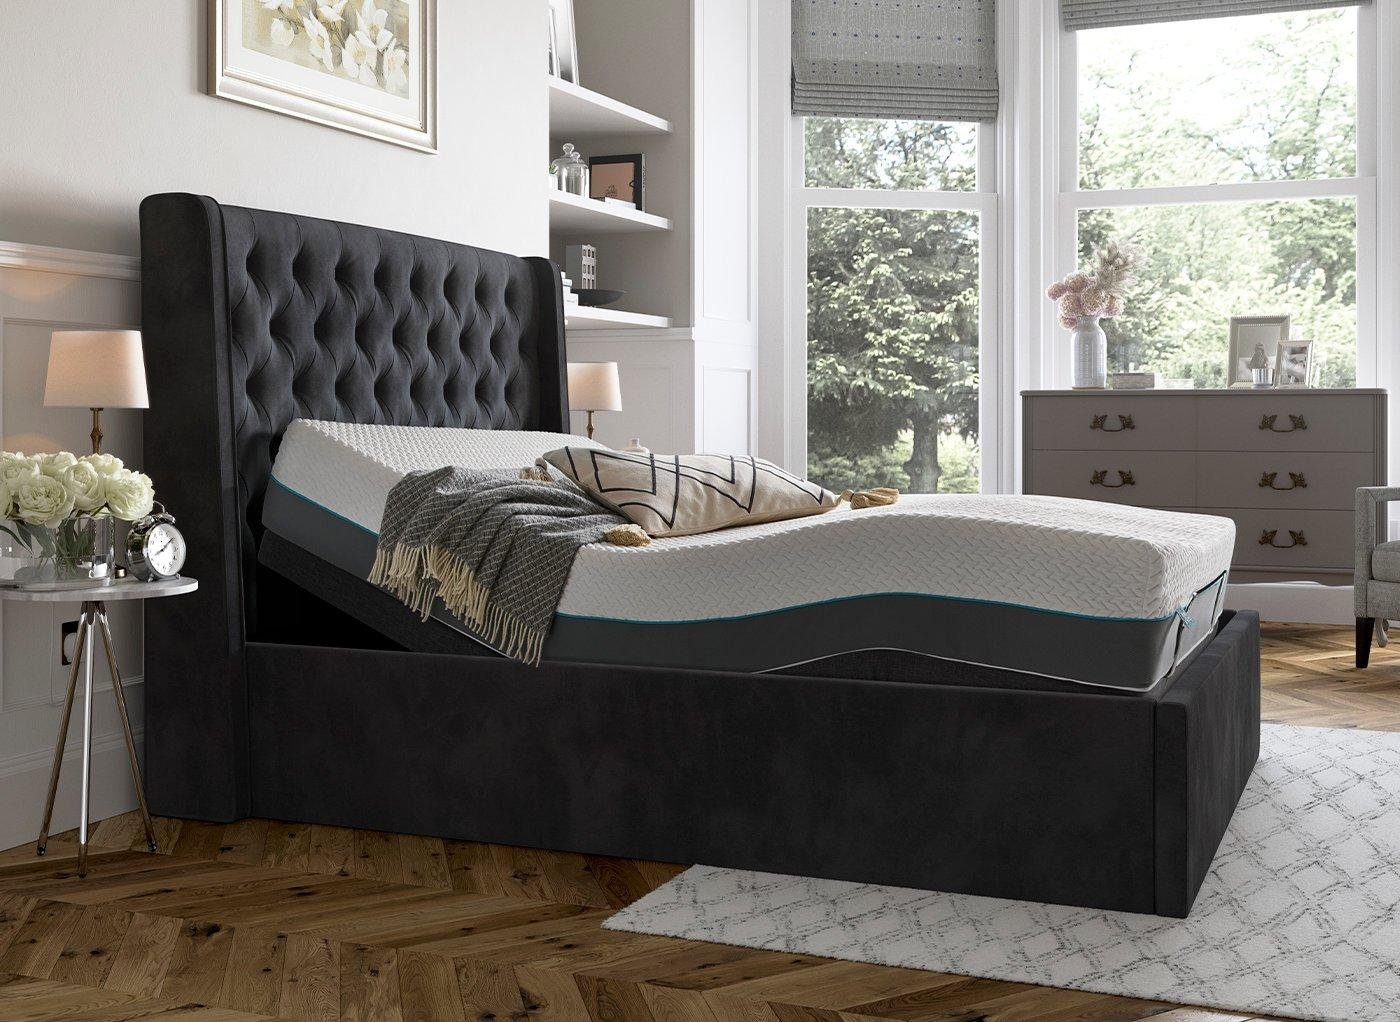 Deacon Sleepmotion 200i Adjustable Upholstered Bed Frame 5'0 King GREY